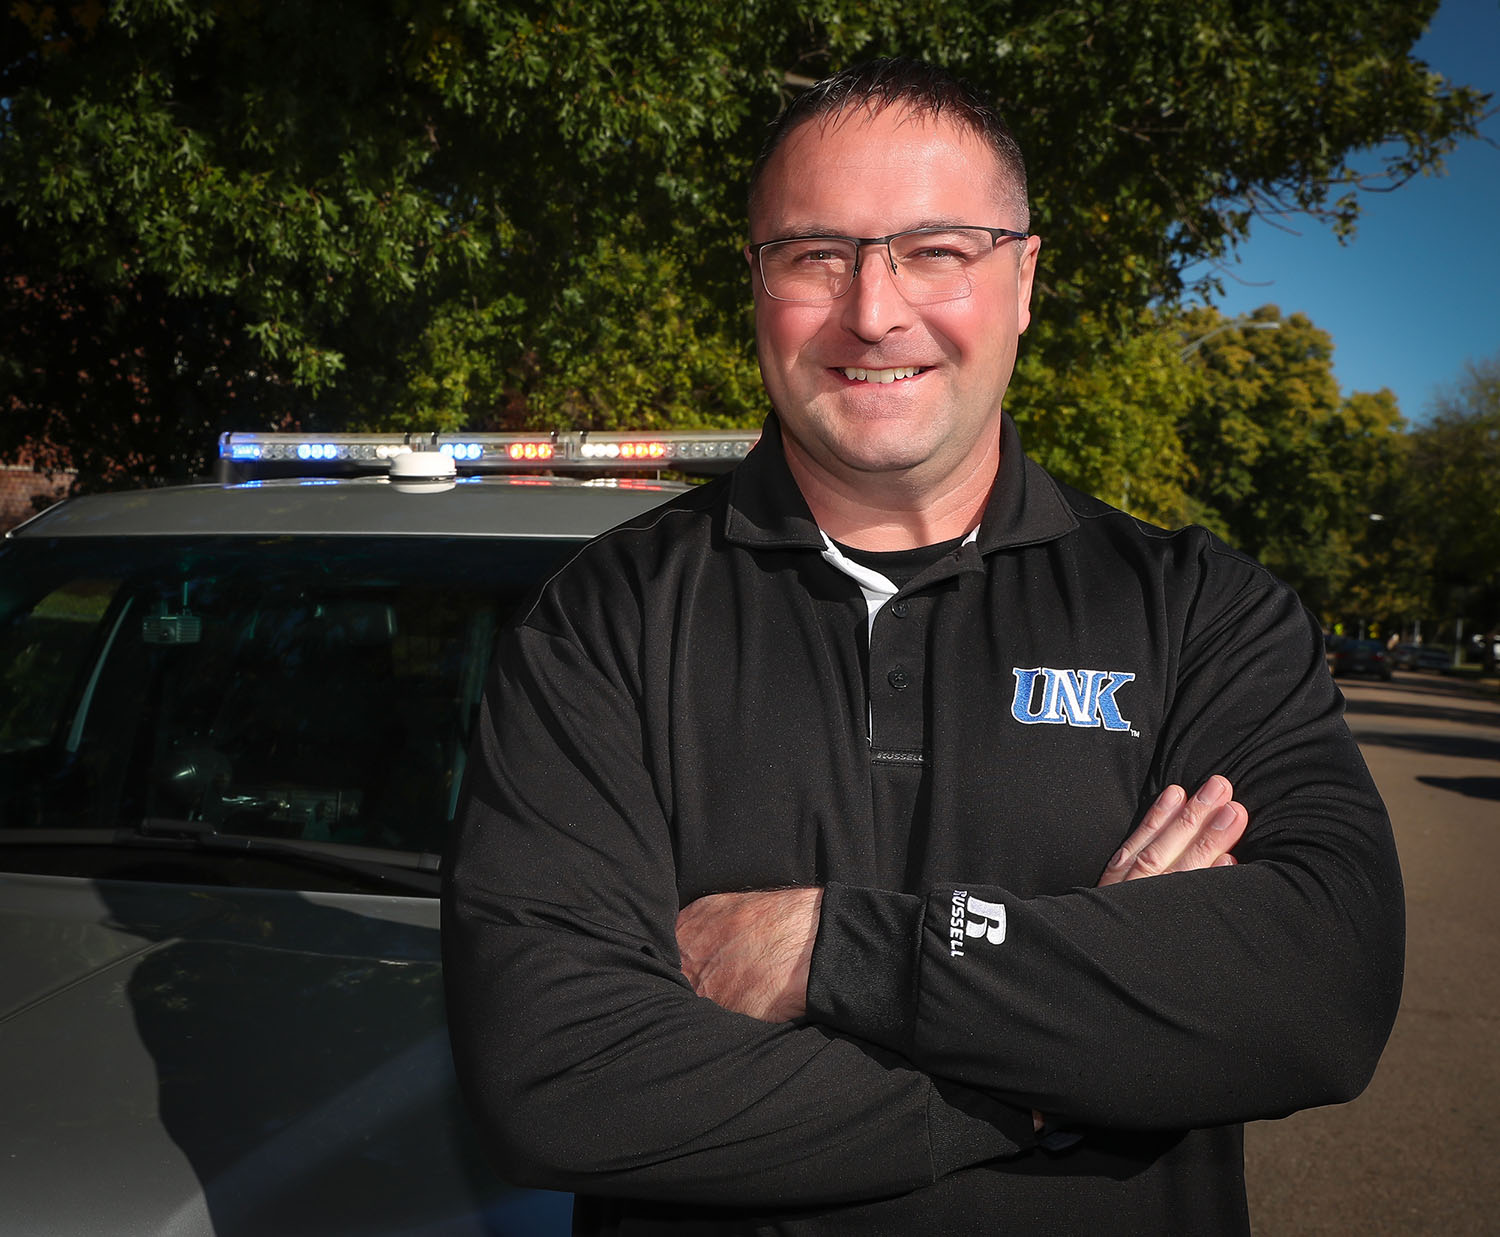 Kyle Harshbarger spent 24 years with Kearney Police Department before joining the UNK faculty in 2018. Earlier this year, he teamed up with UNK Police Chief Jim Davis to launch a program that offers continuing education at little to no cost for any Nebraska law enforcement agency.